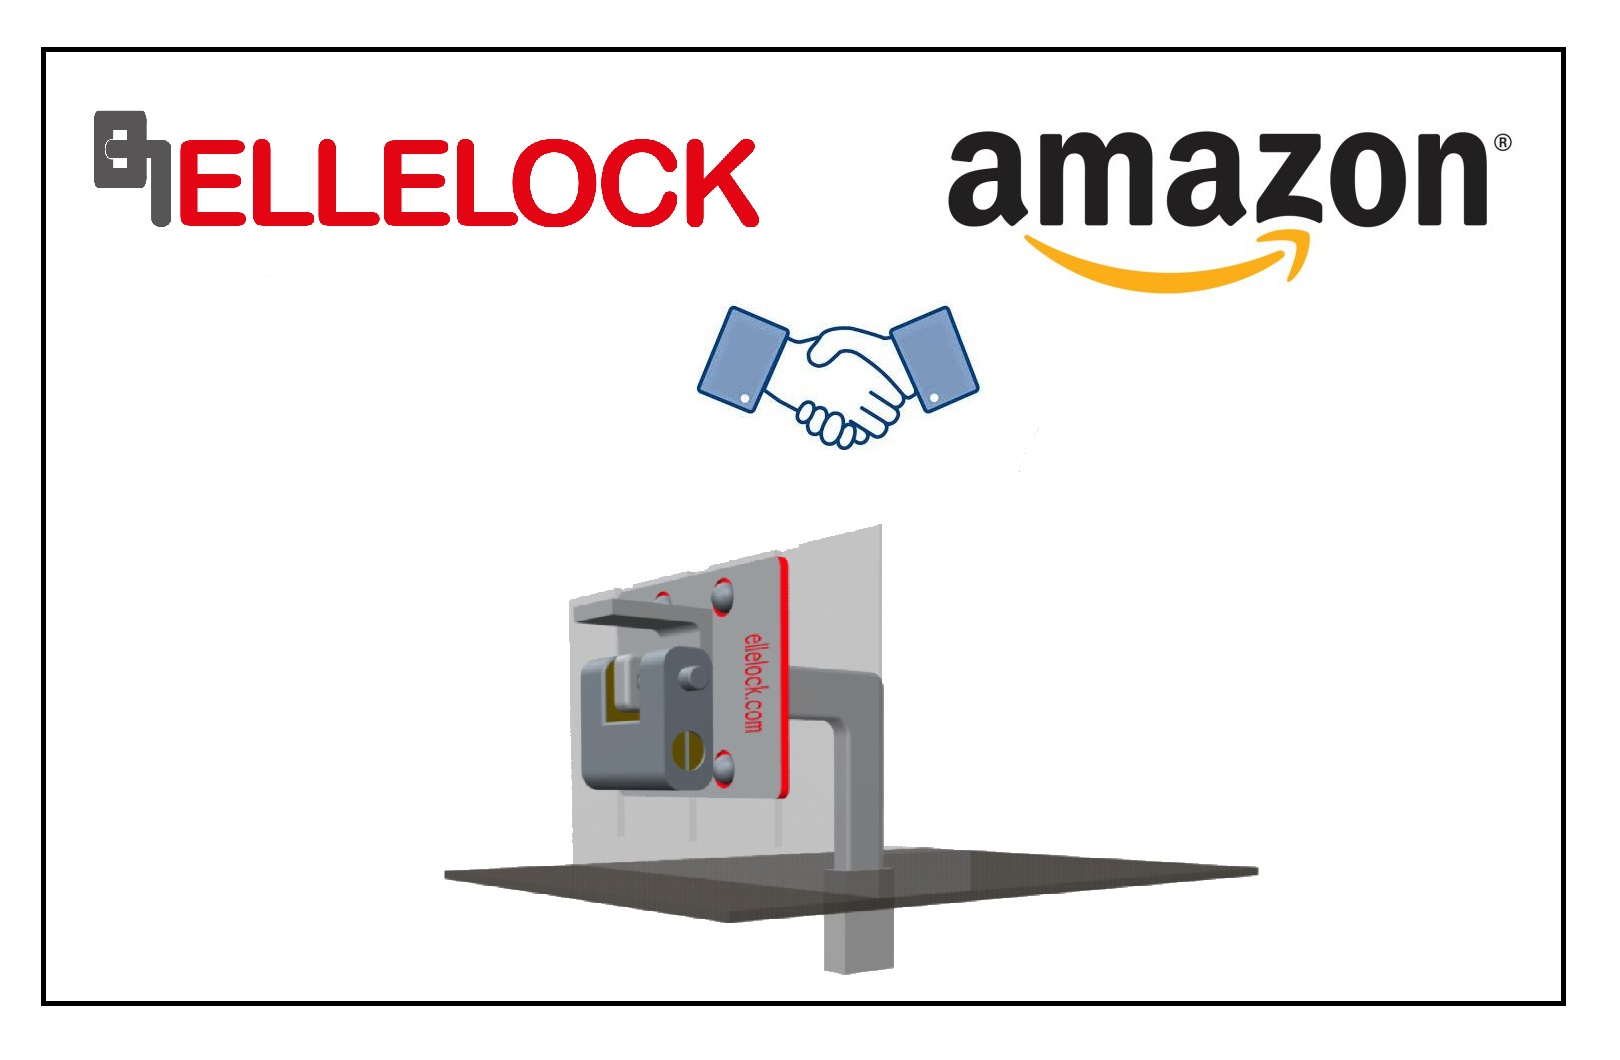 Partnership Ellelock Amazon